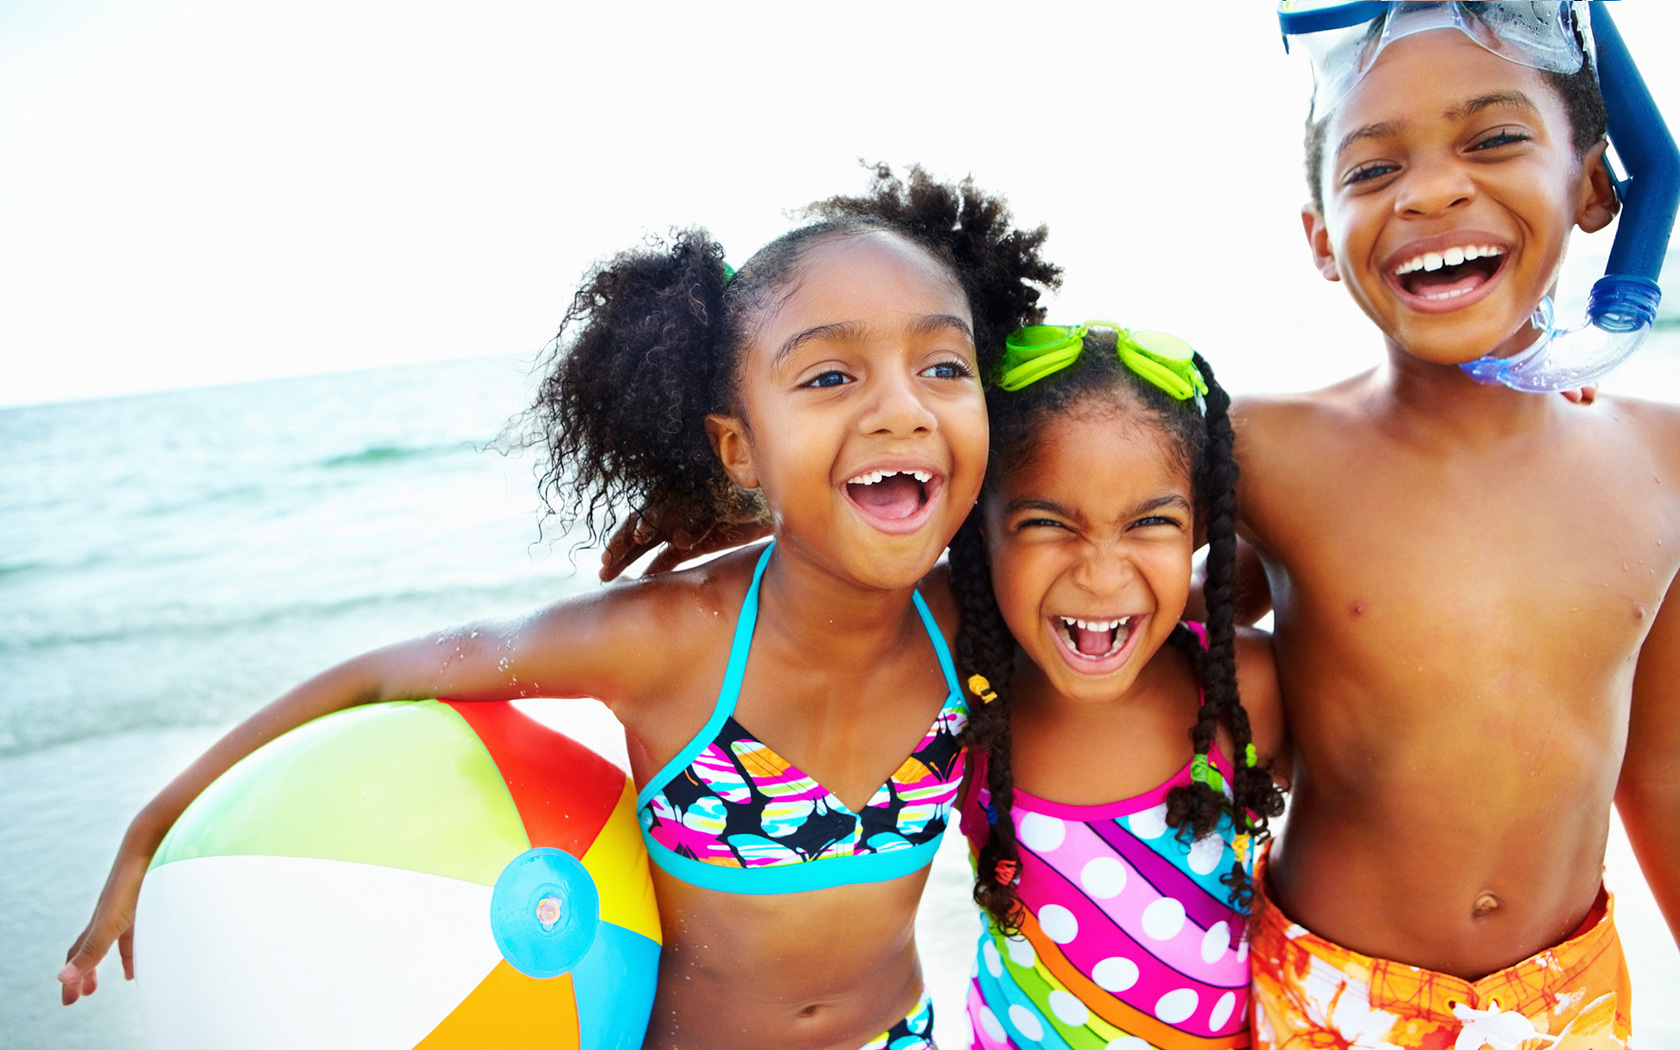 3 children on the beach, wearing bathing suits, sporting goggles and holding beach balls, laughing.